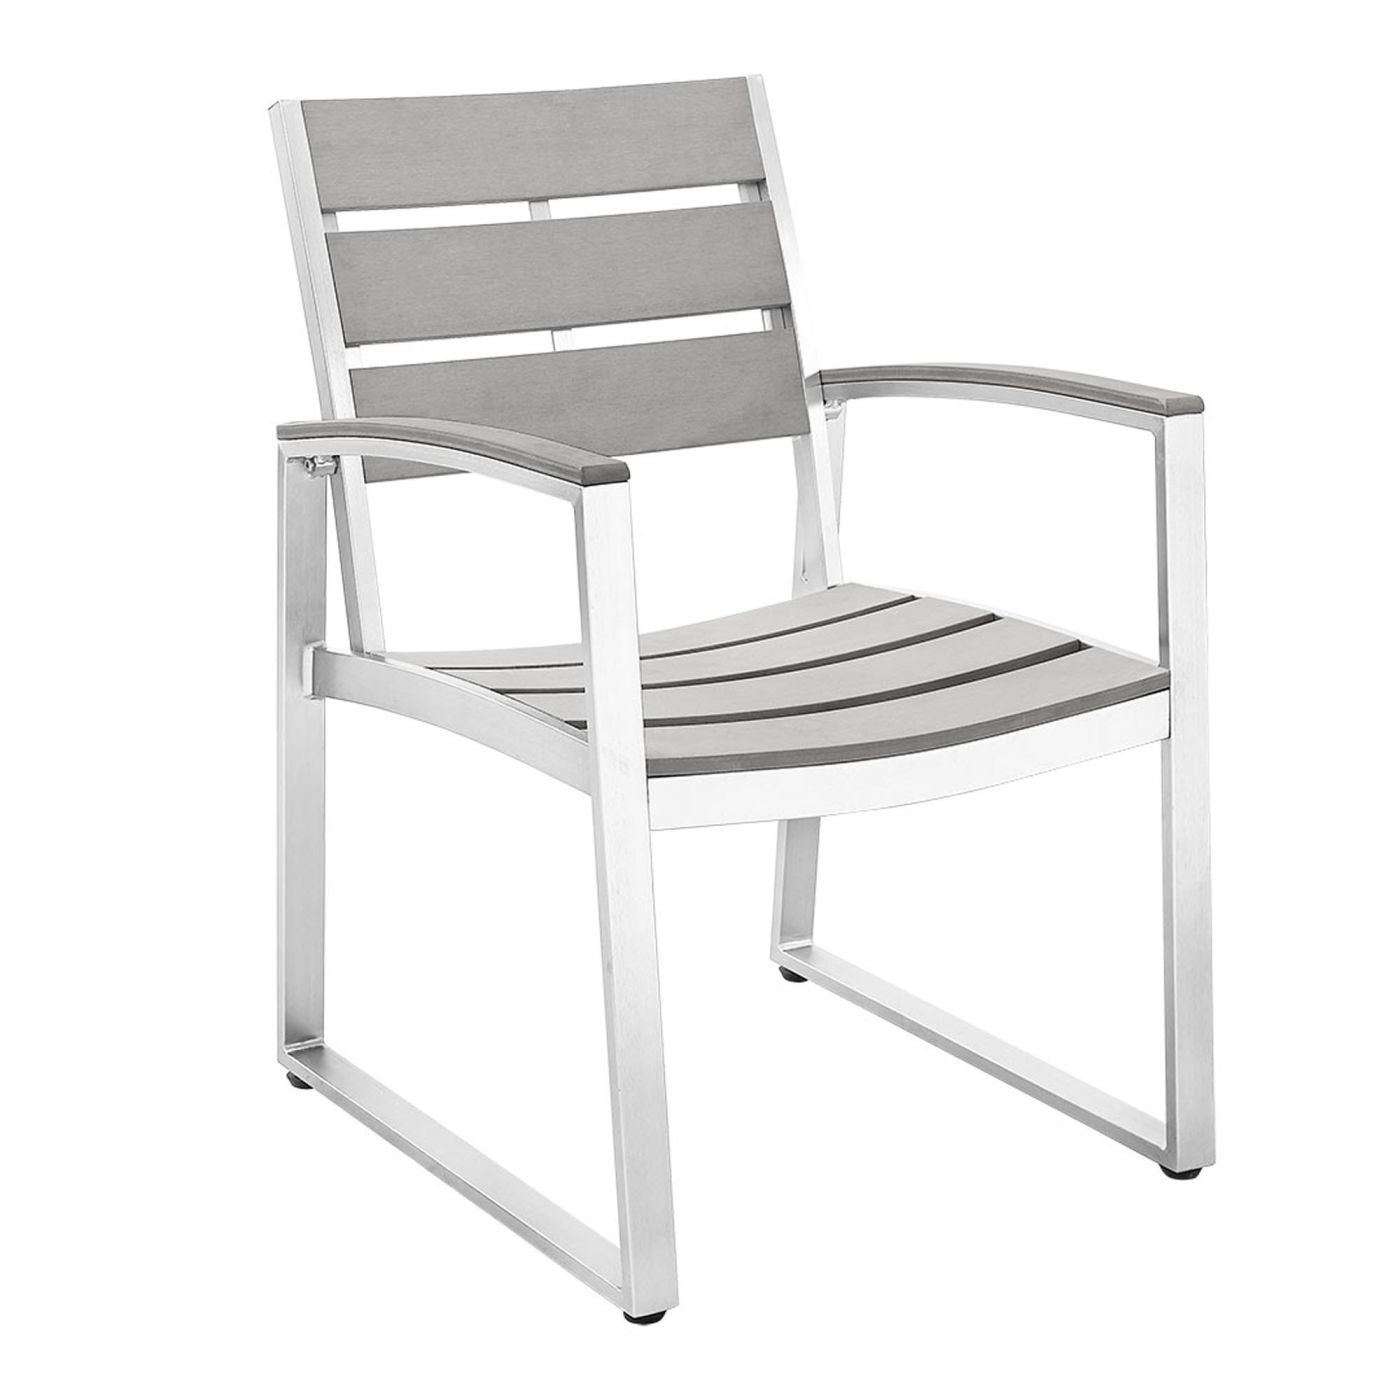 Walker Edison All Weather Grey Patio Dining Chairs Set of 2